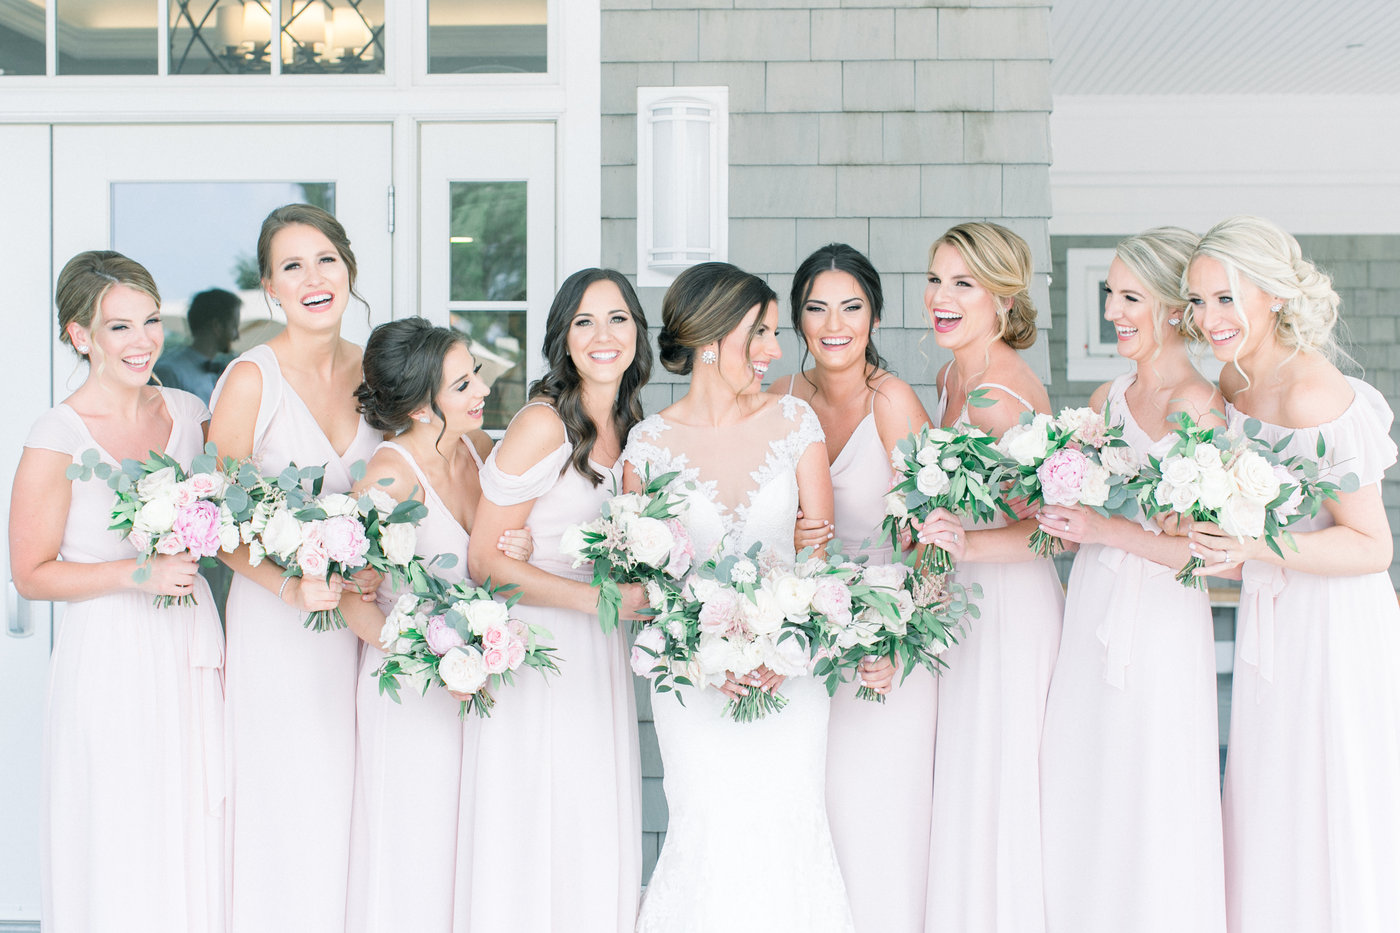 Shorehaven Golf Club wedding bridal party bridesmaids bouquets peonies blush garden roses.jpg